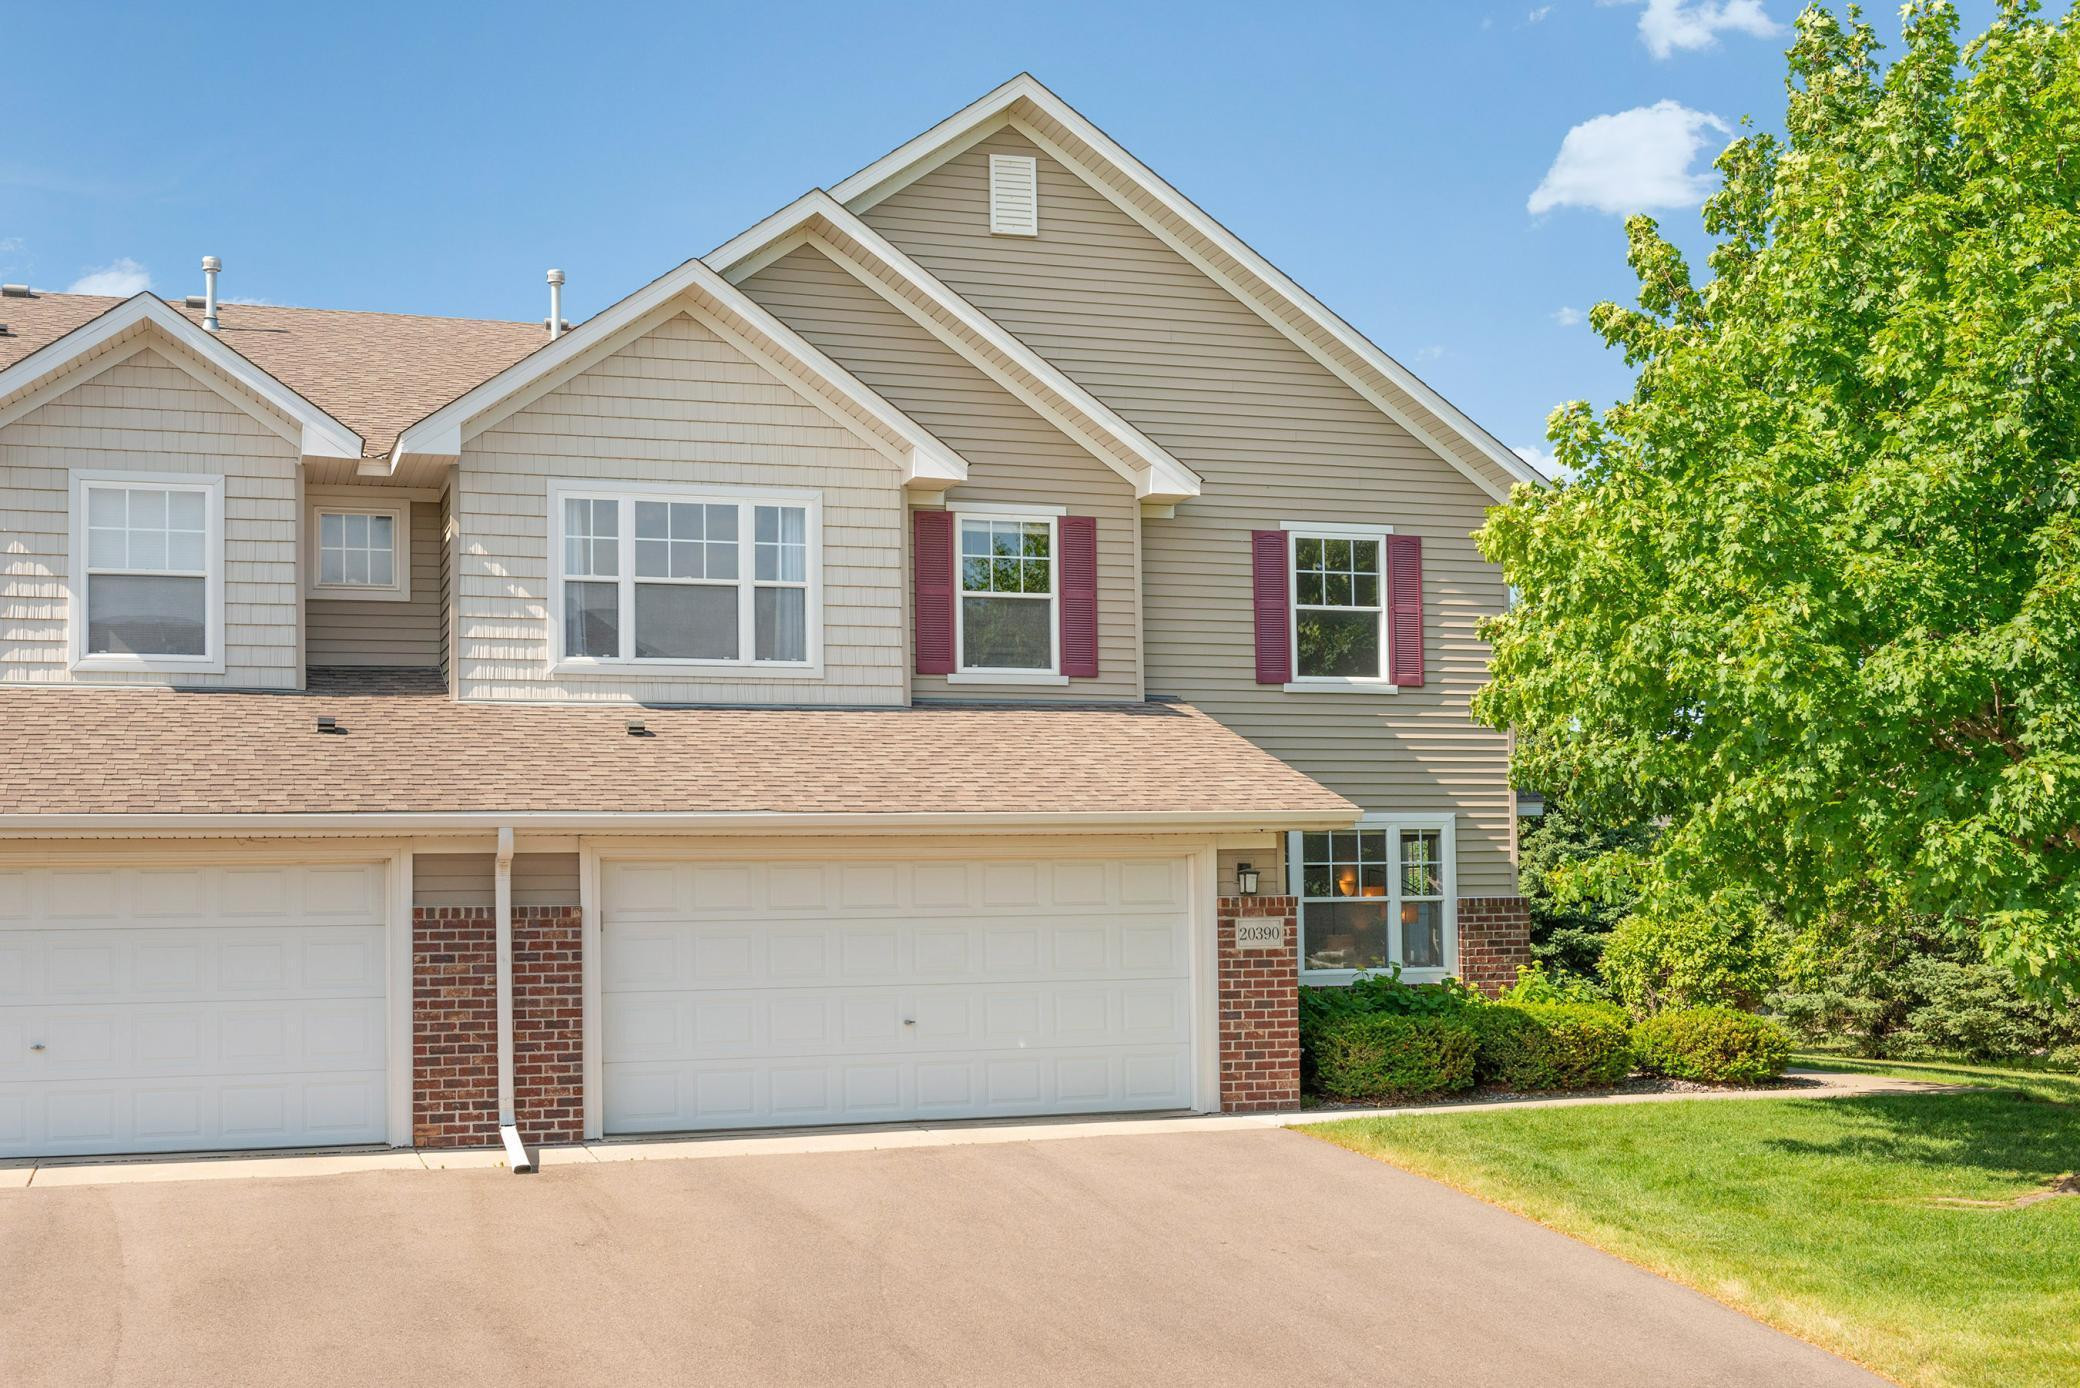 20390 Kensfield Trail, Lakeville, MN 55044